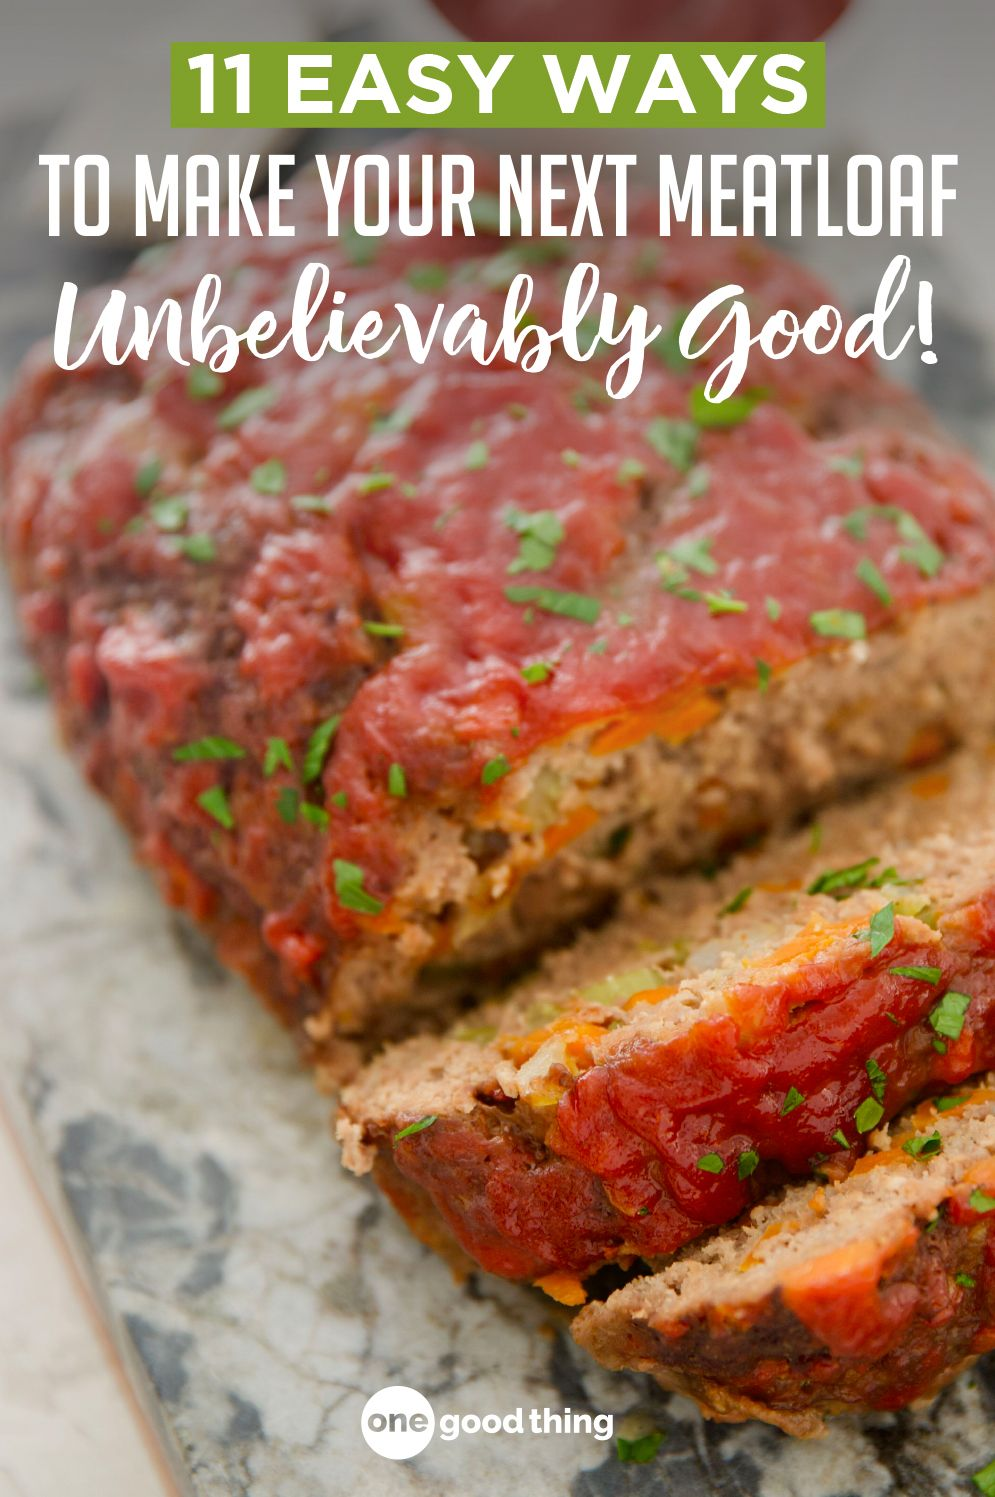 11 Tips Tricks For Perfect Meatloaf One Good Thing By Jillee Recipe Meatloaf Recipes Perfect Meatloaf